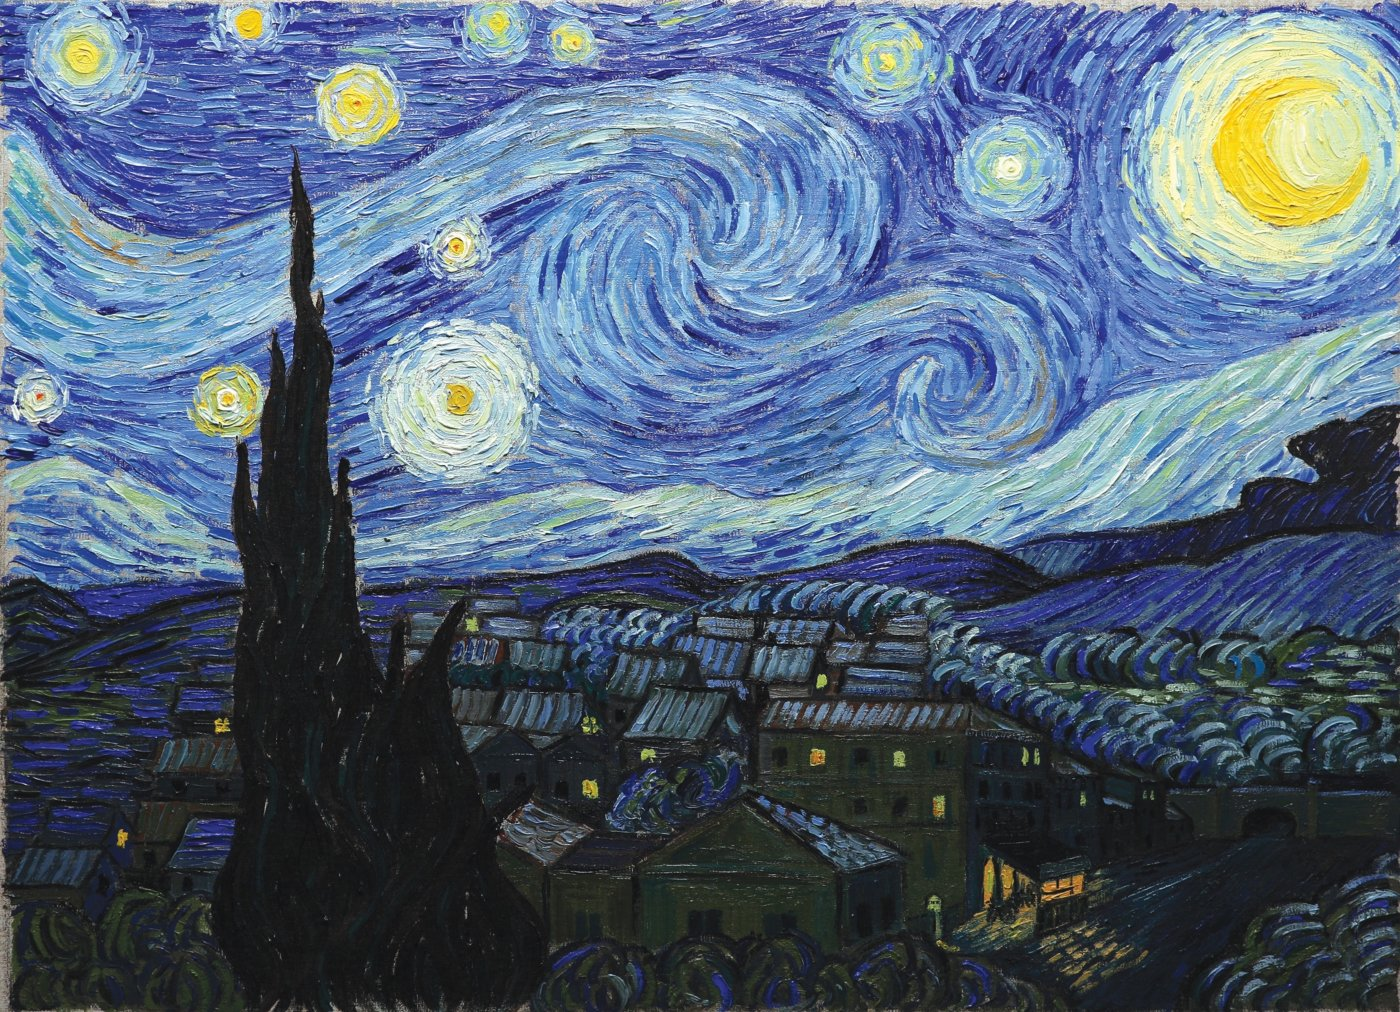 Starry, starry night...